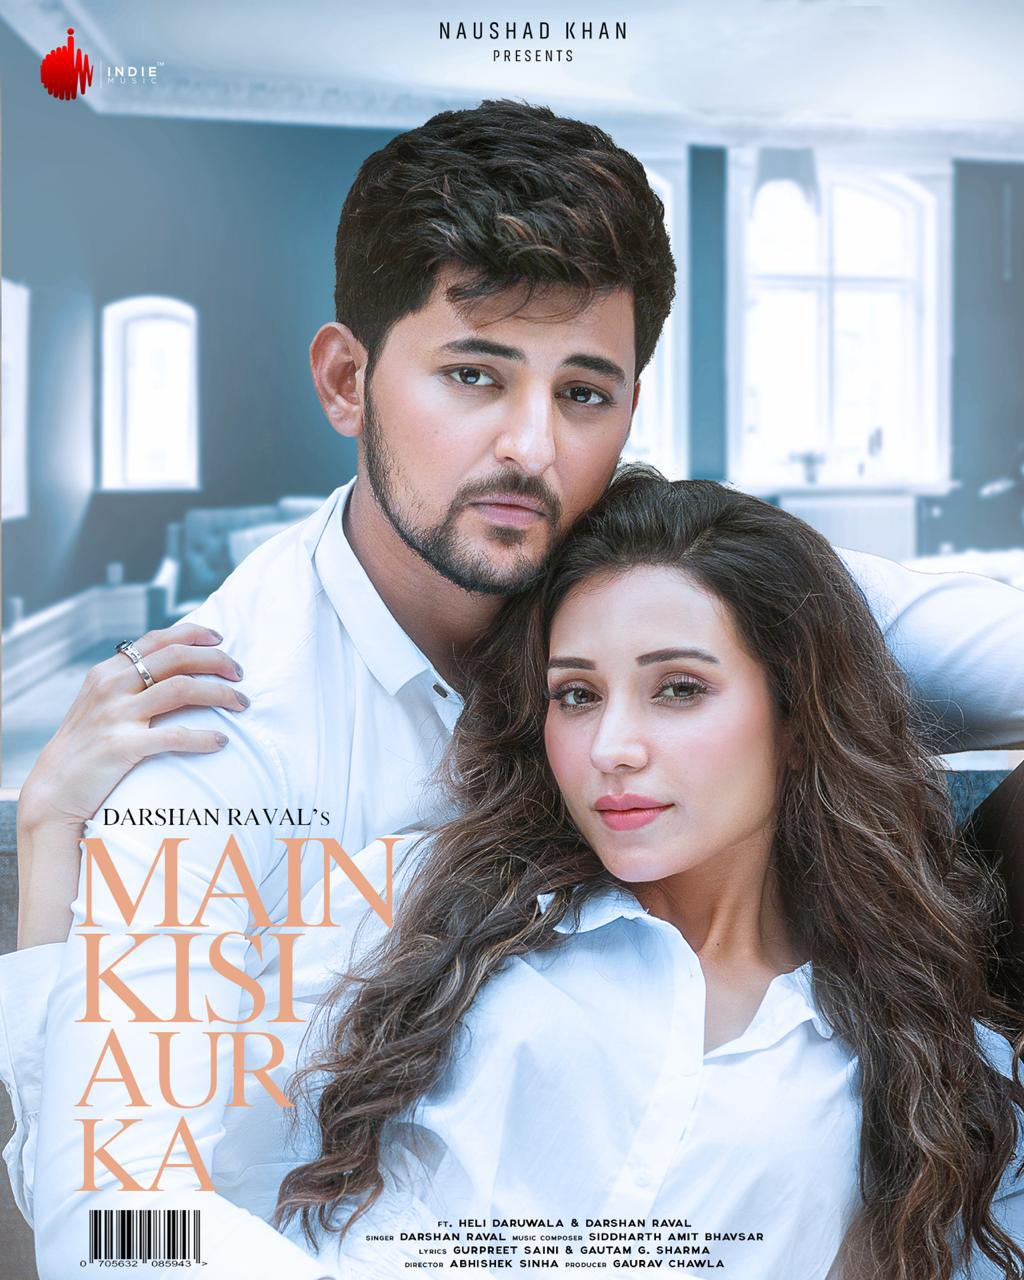 Main Kisi Aur Ka By Darshan Raval Official Music Video 1080p HDRip 73MB Download